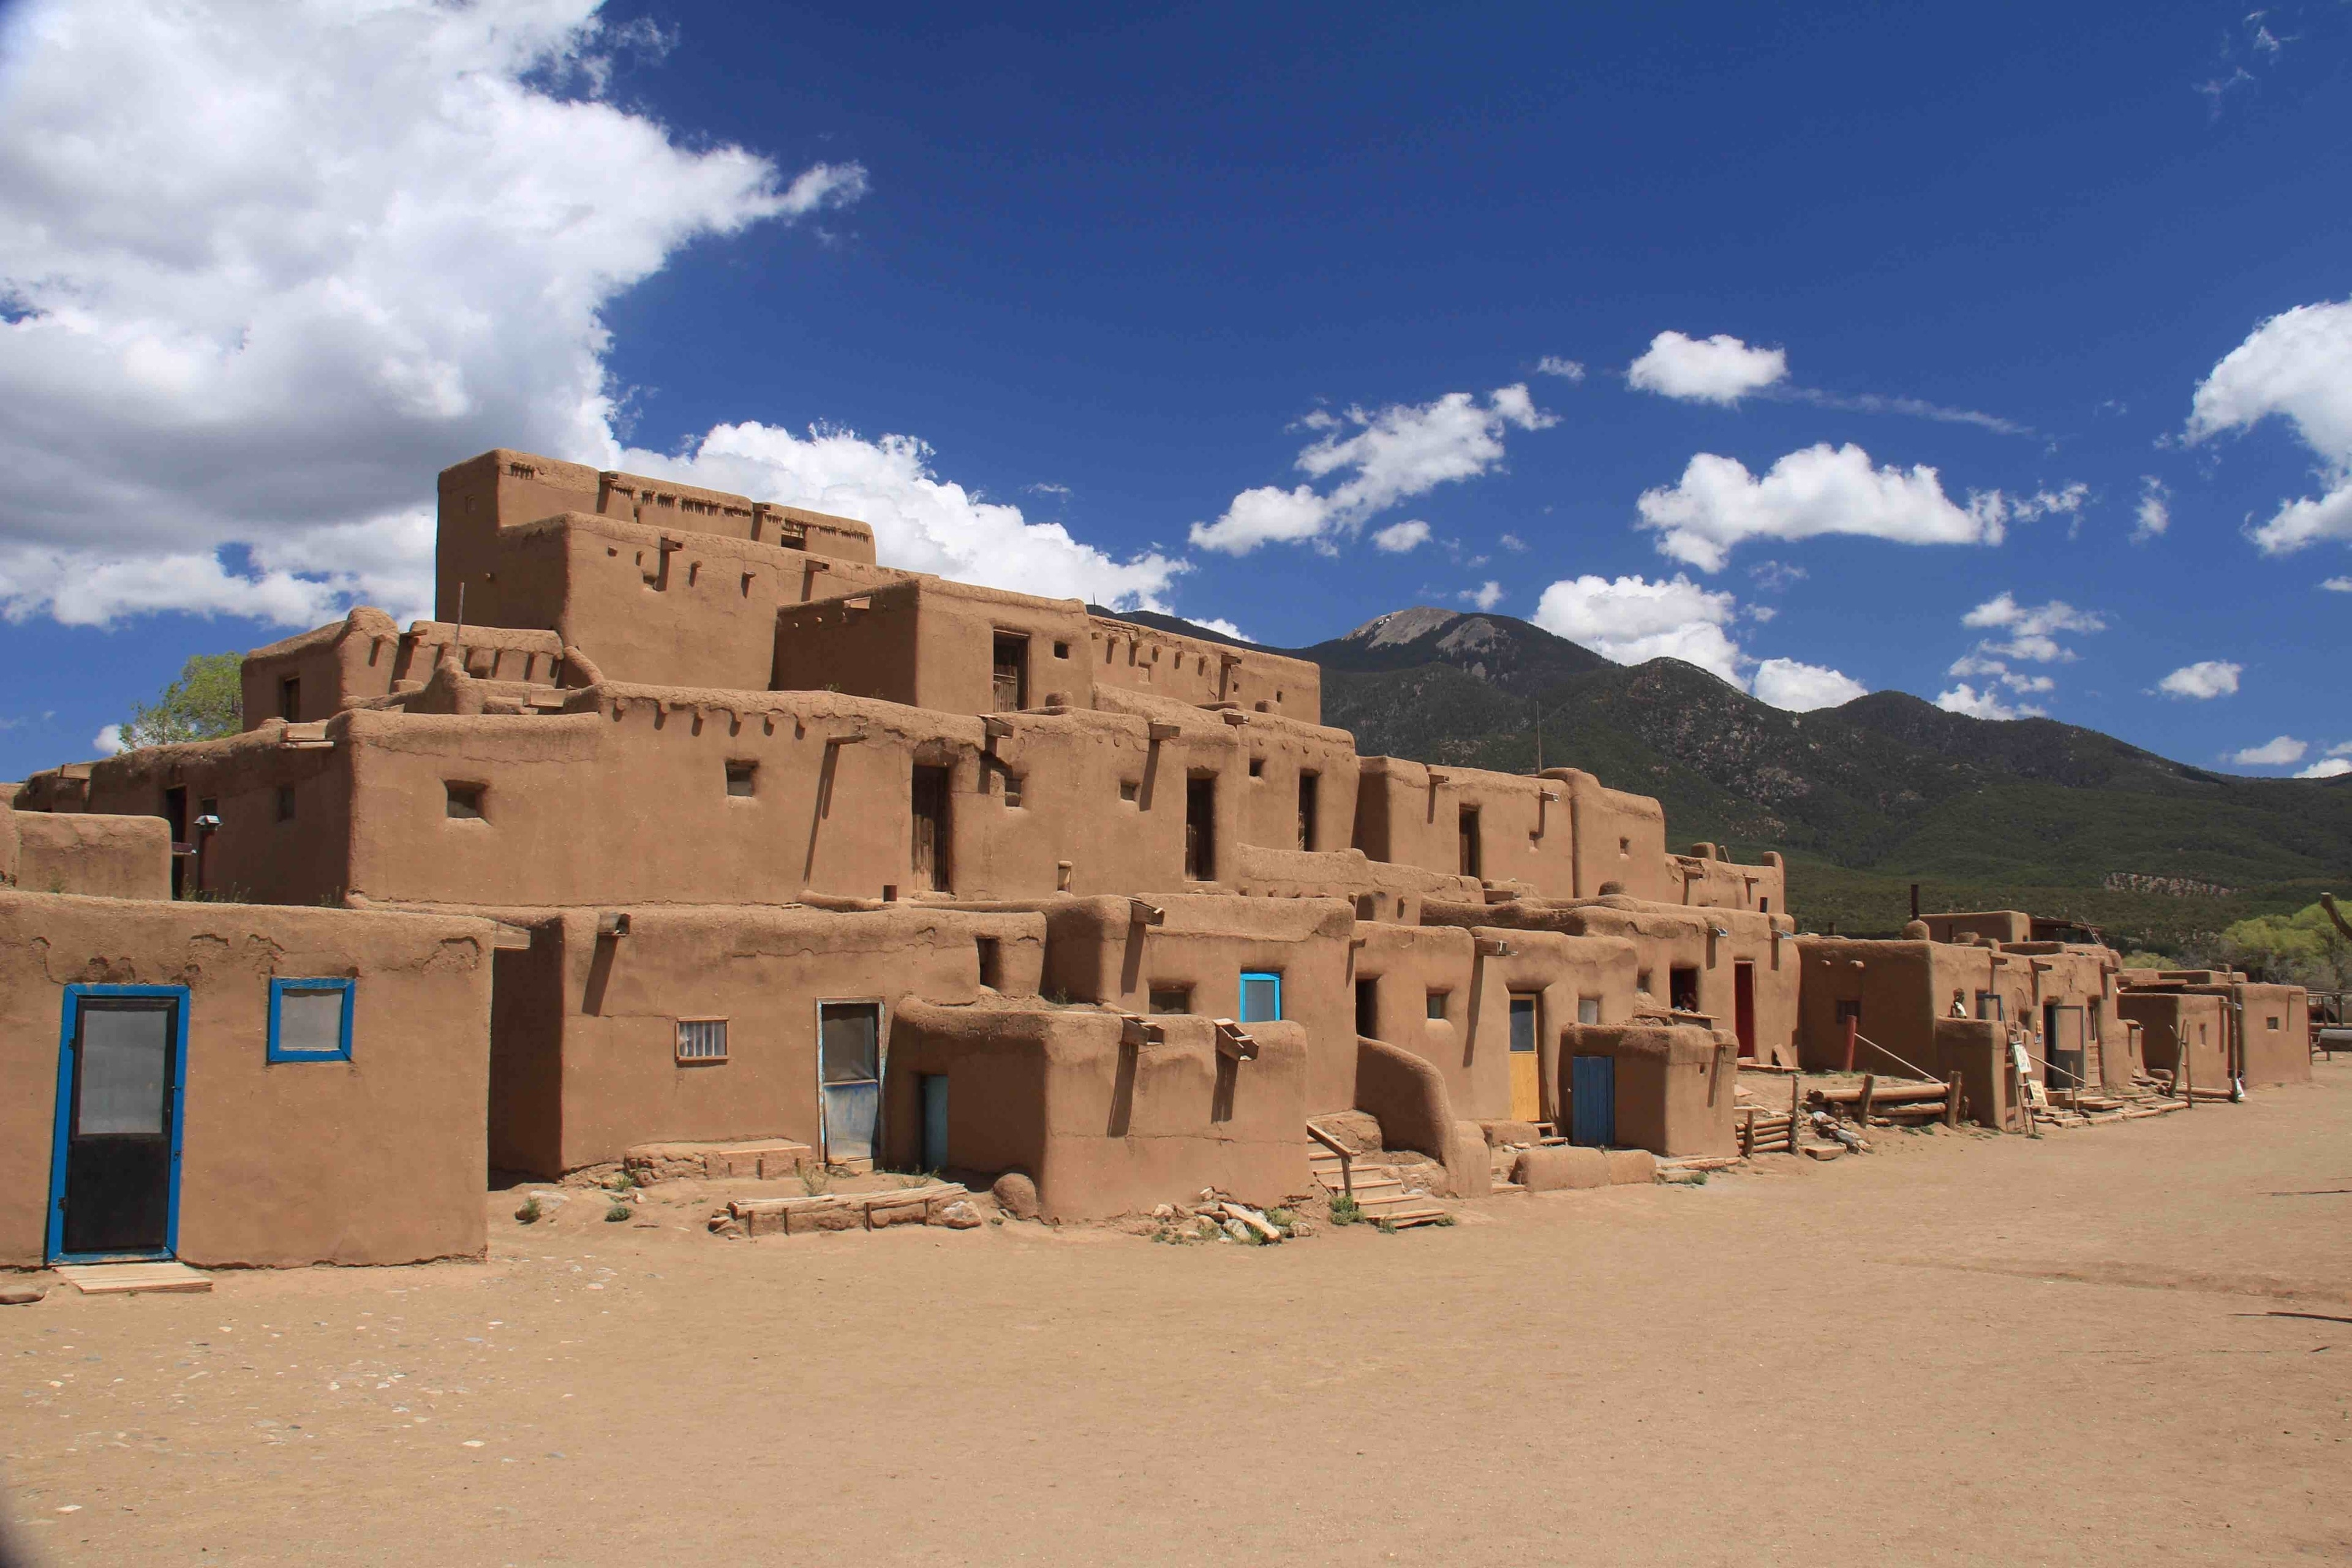 Taos, New Mexico, United States of America